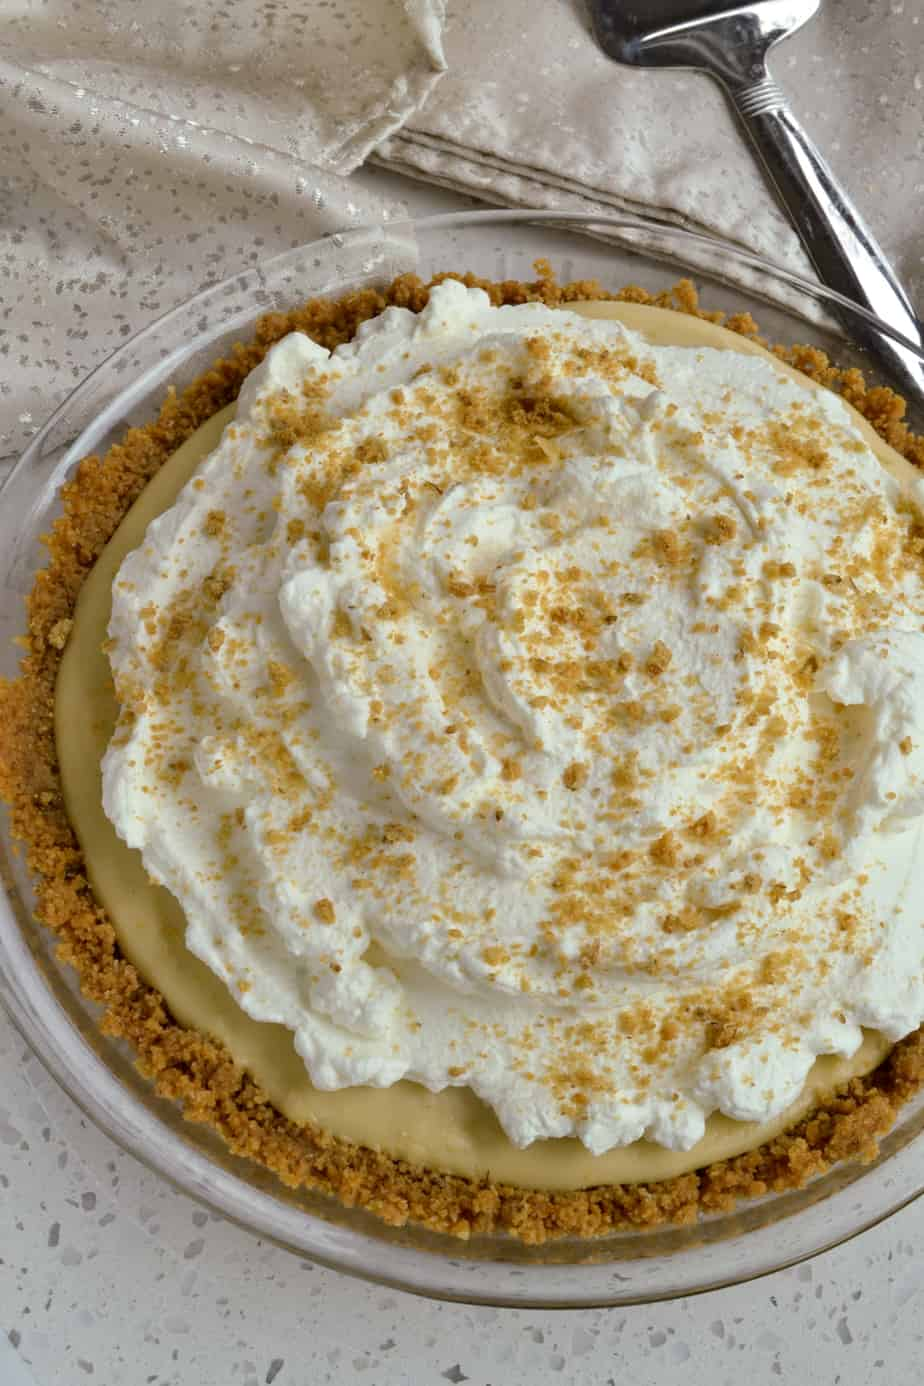 A whole butterscotch pie topped with whipped cream.